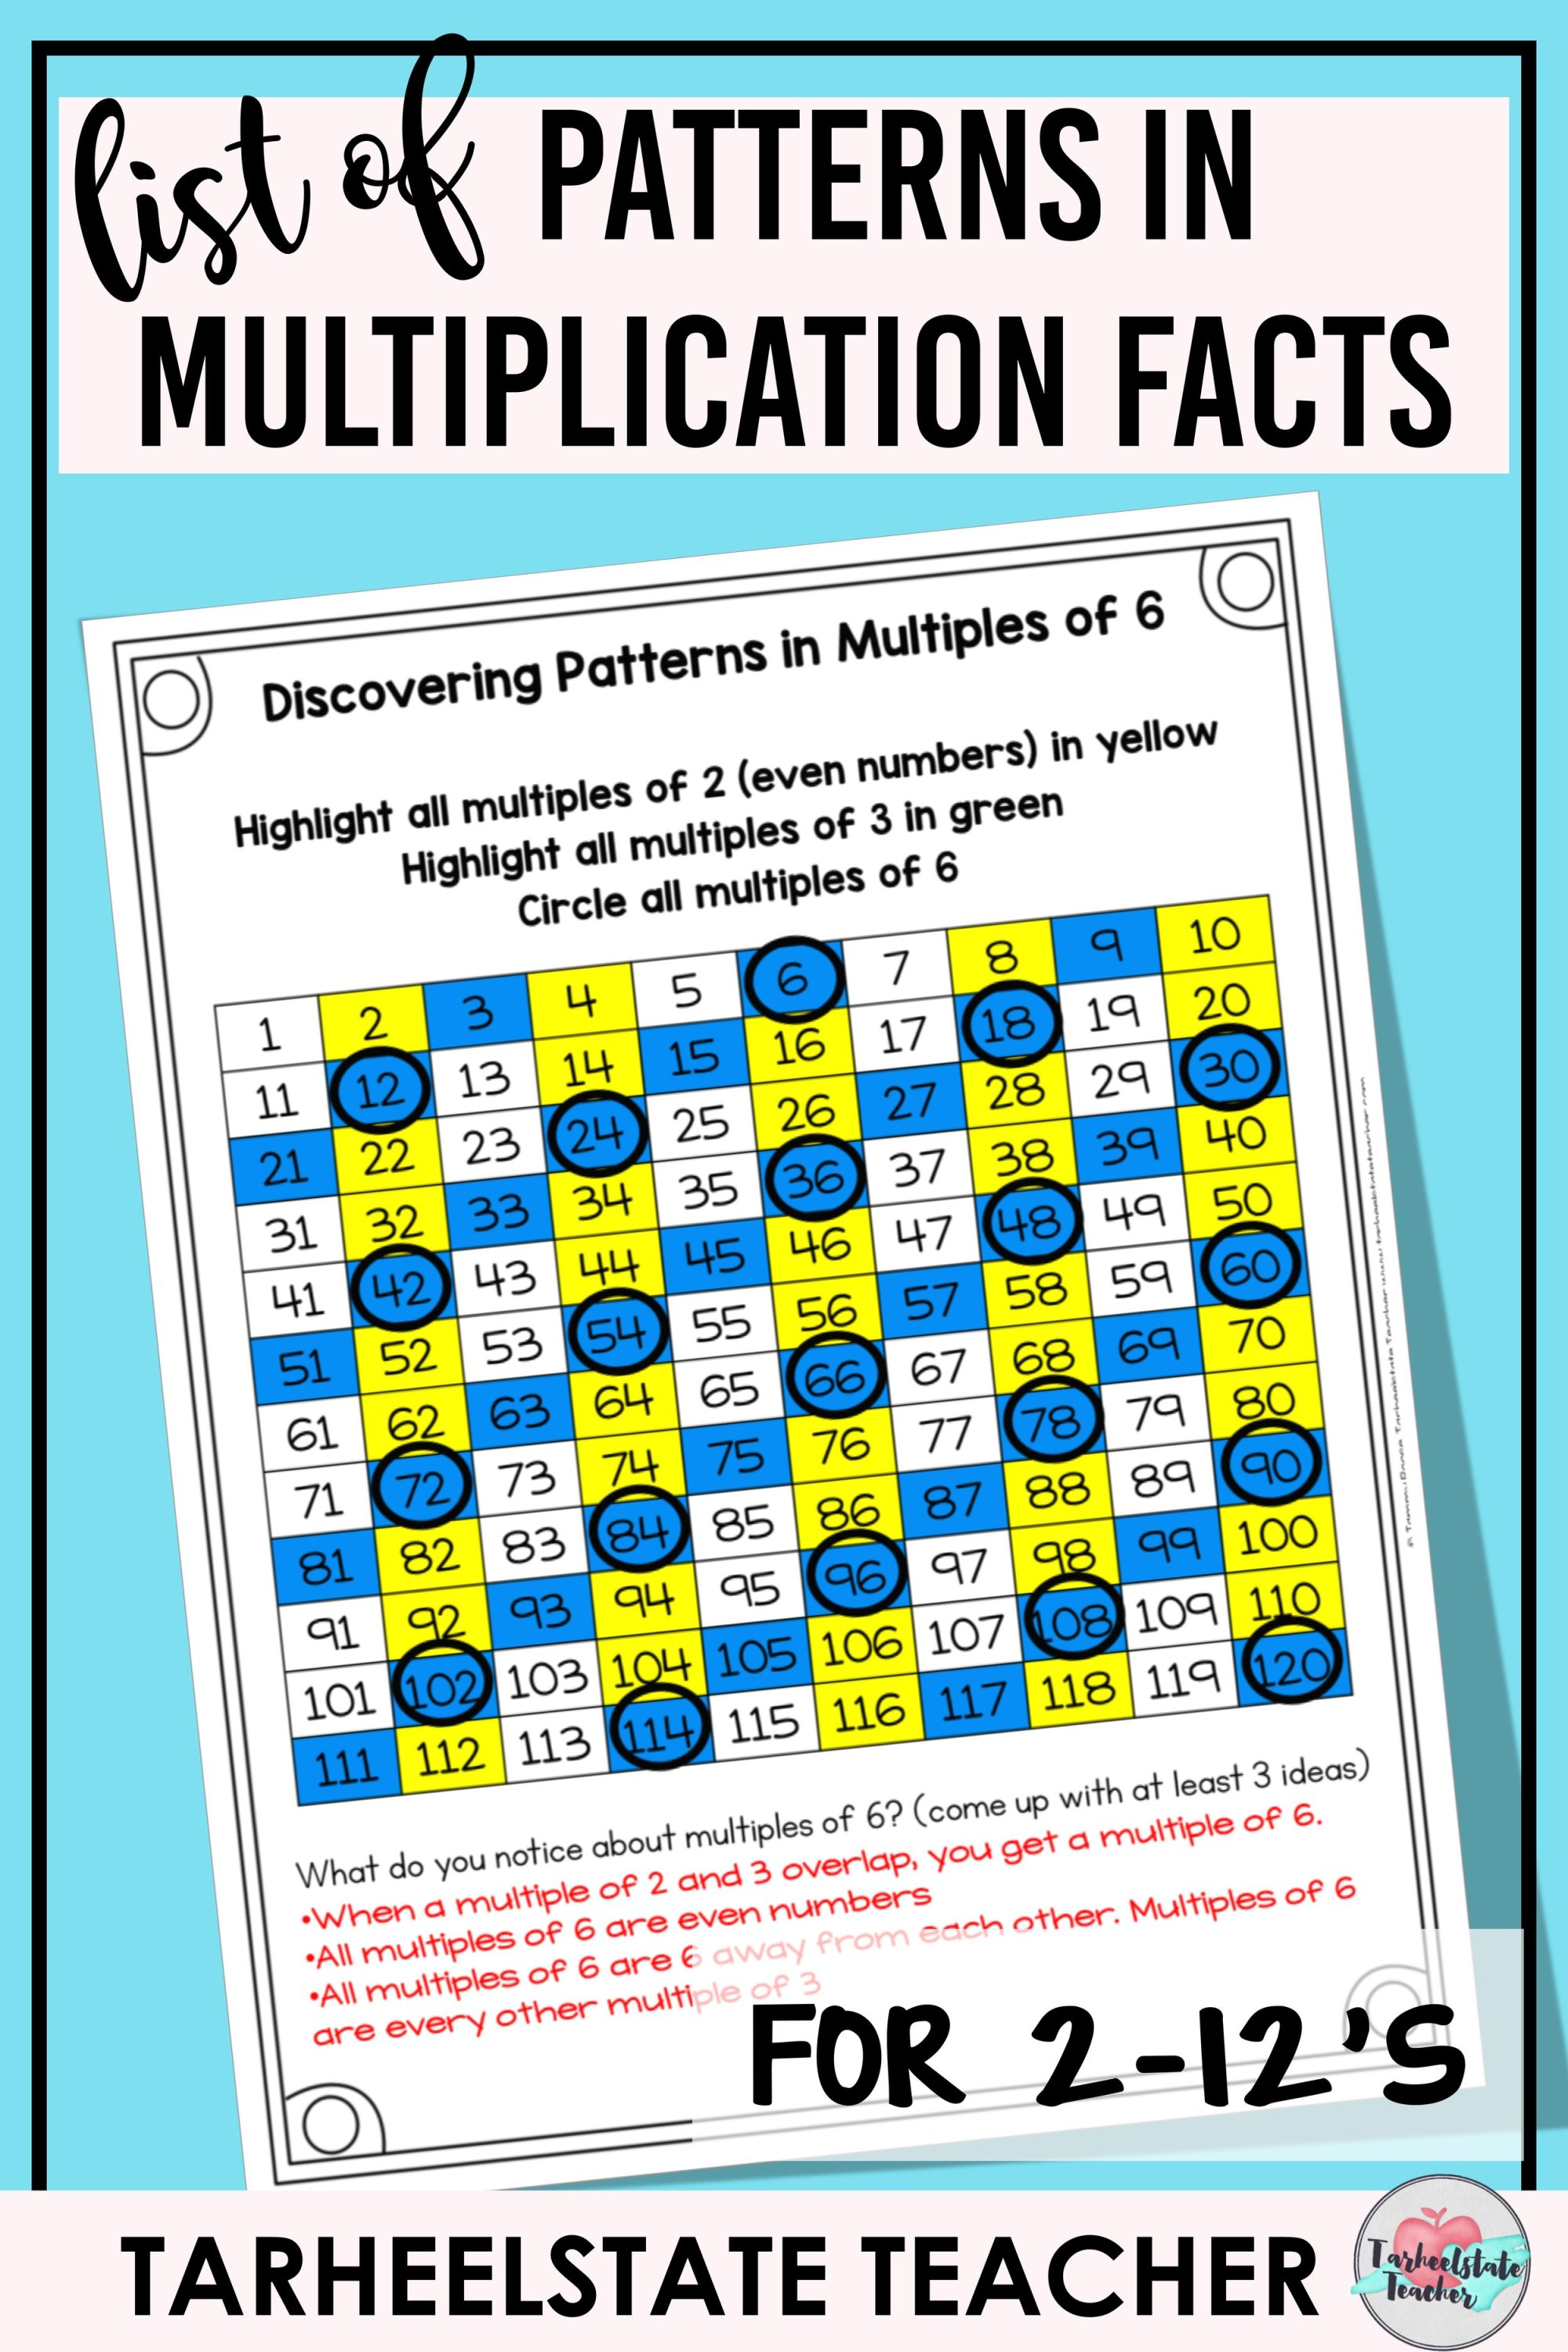 hight resolution of Multiplication Patterns in Times Tables — Tarheelstate Teacher